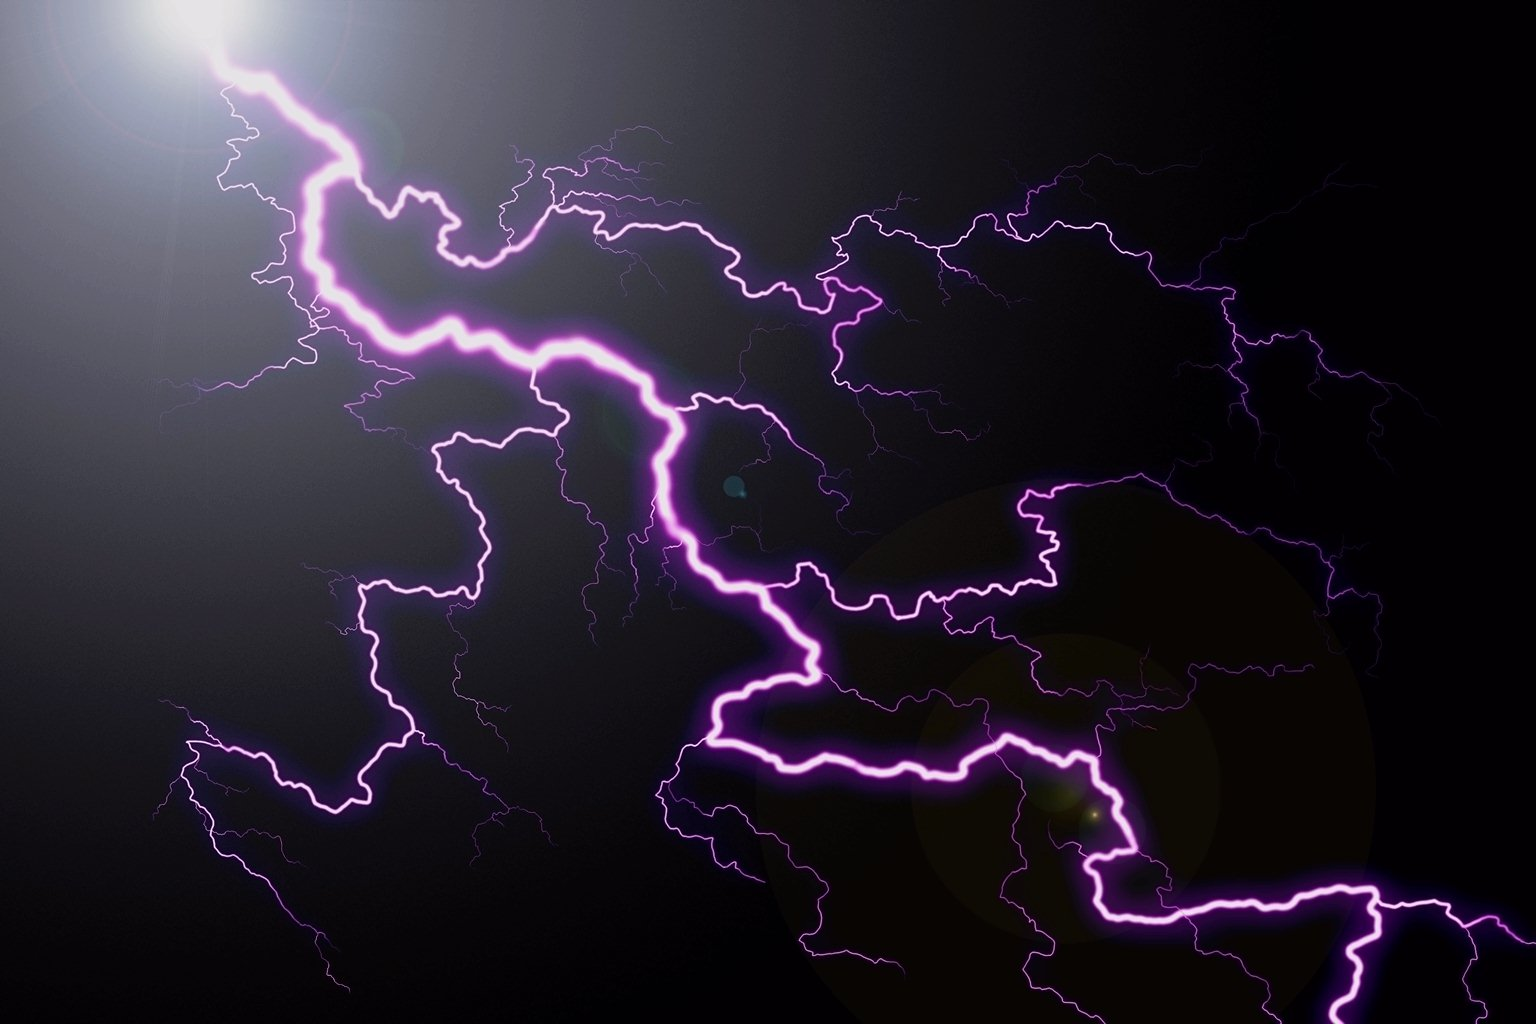 Lightning and optical materials 5028